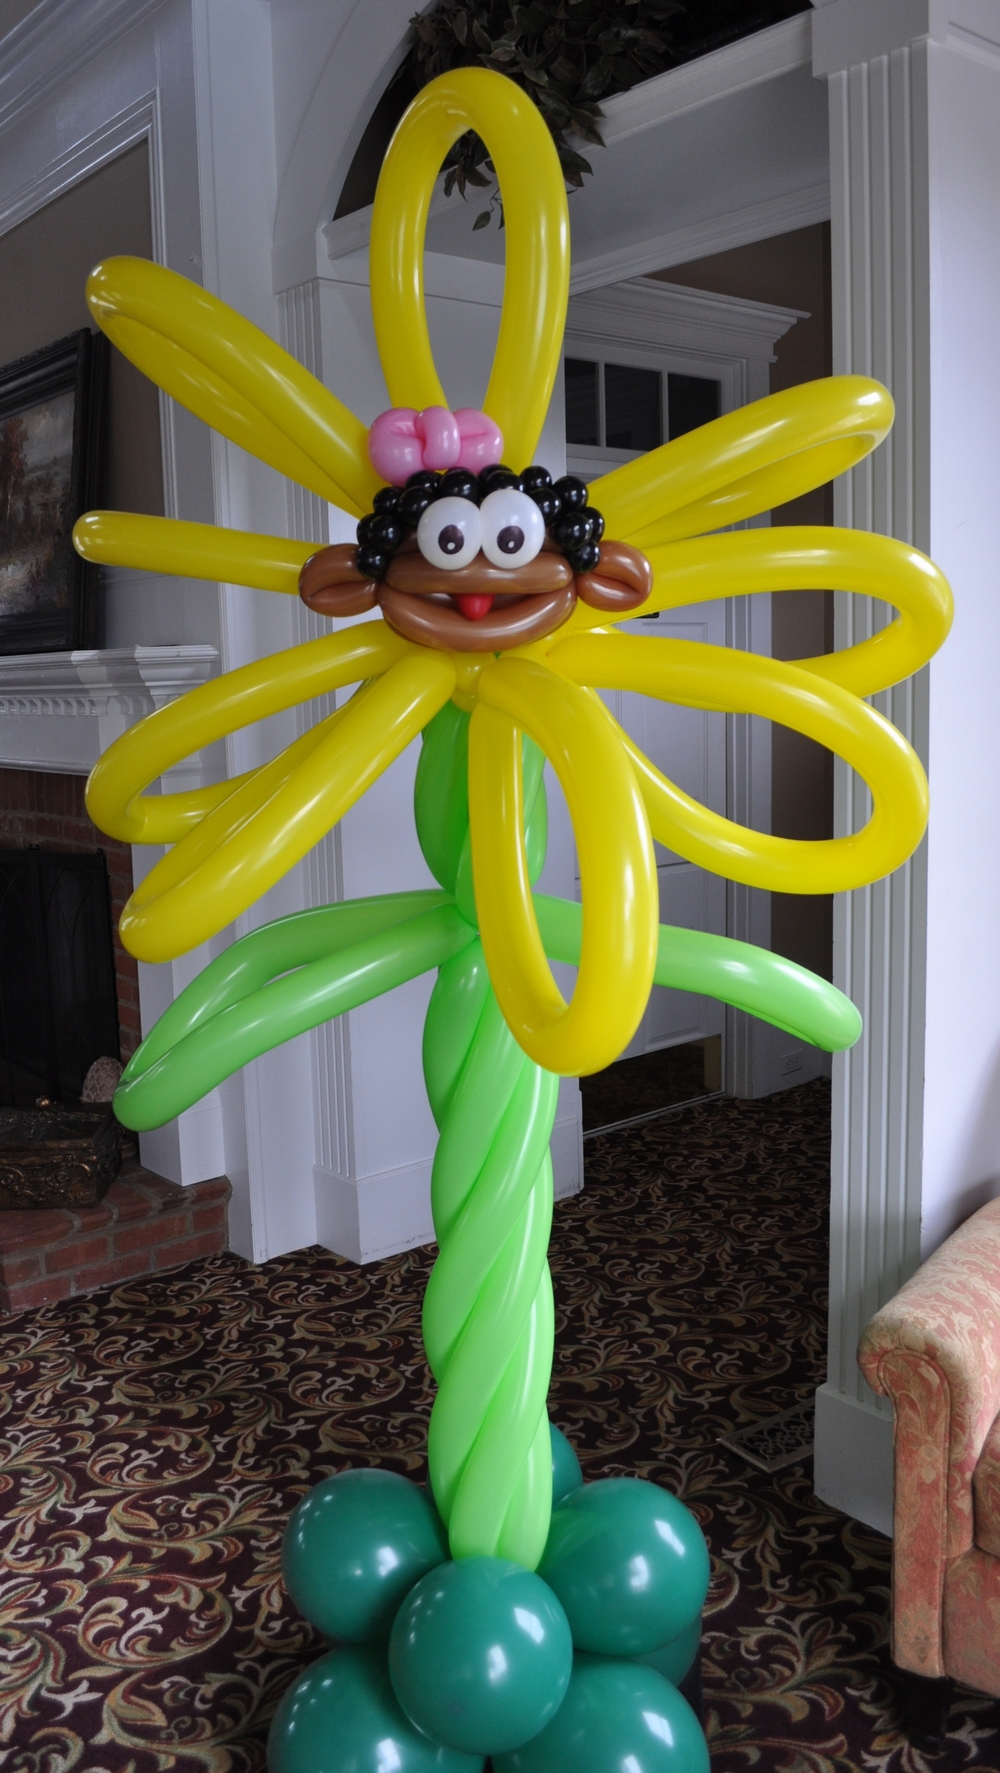 Alice in wonderland balloon yellow talking flower